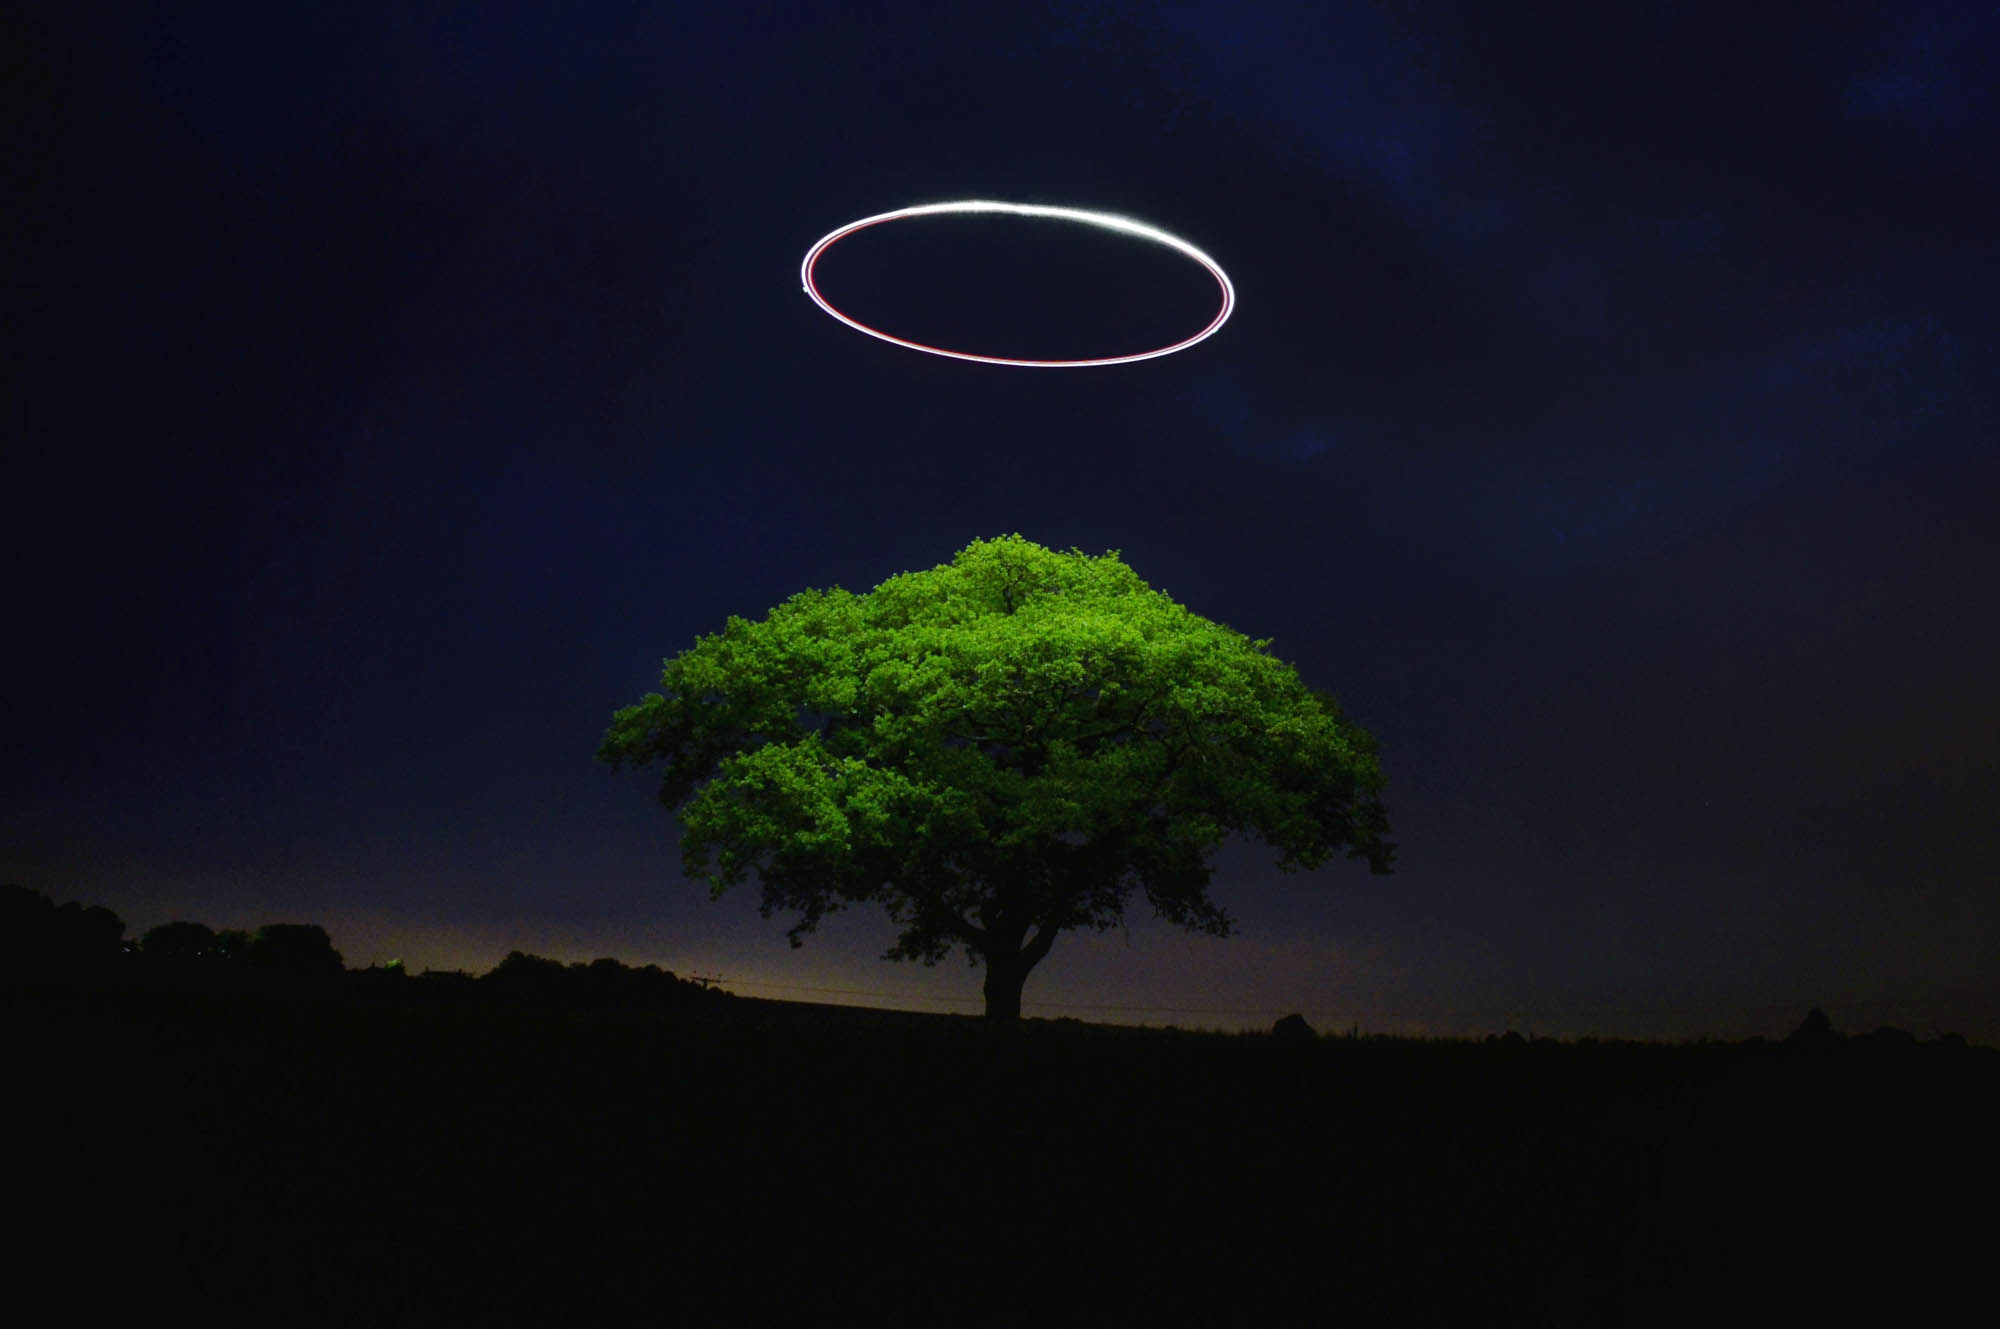 Light trails of a drone lighting up a tree at night